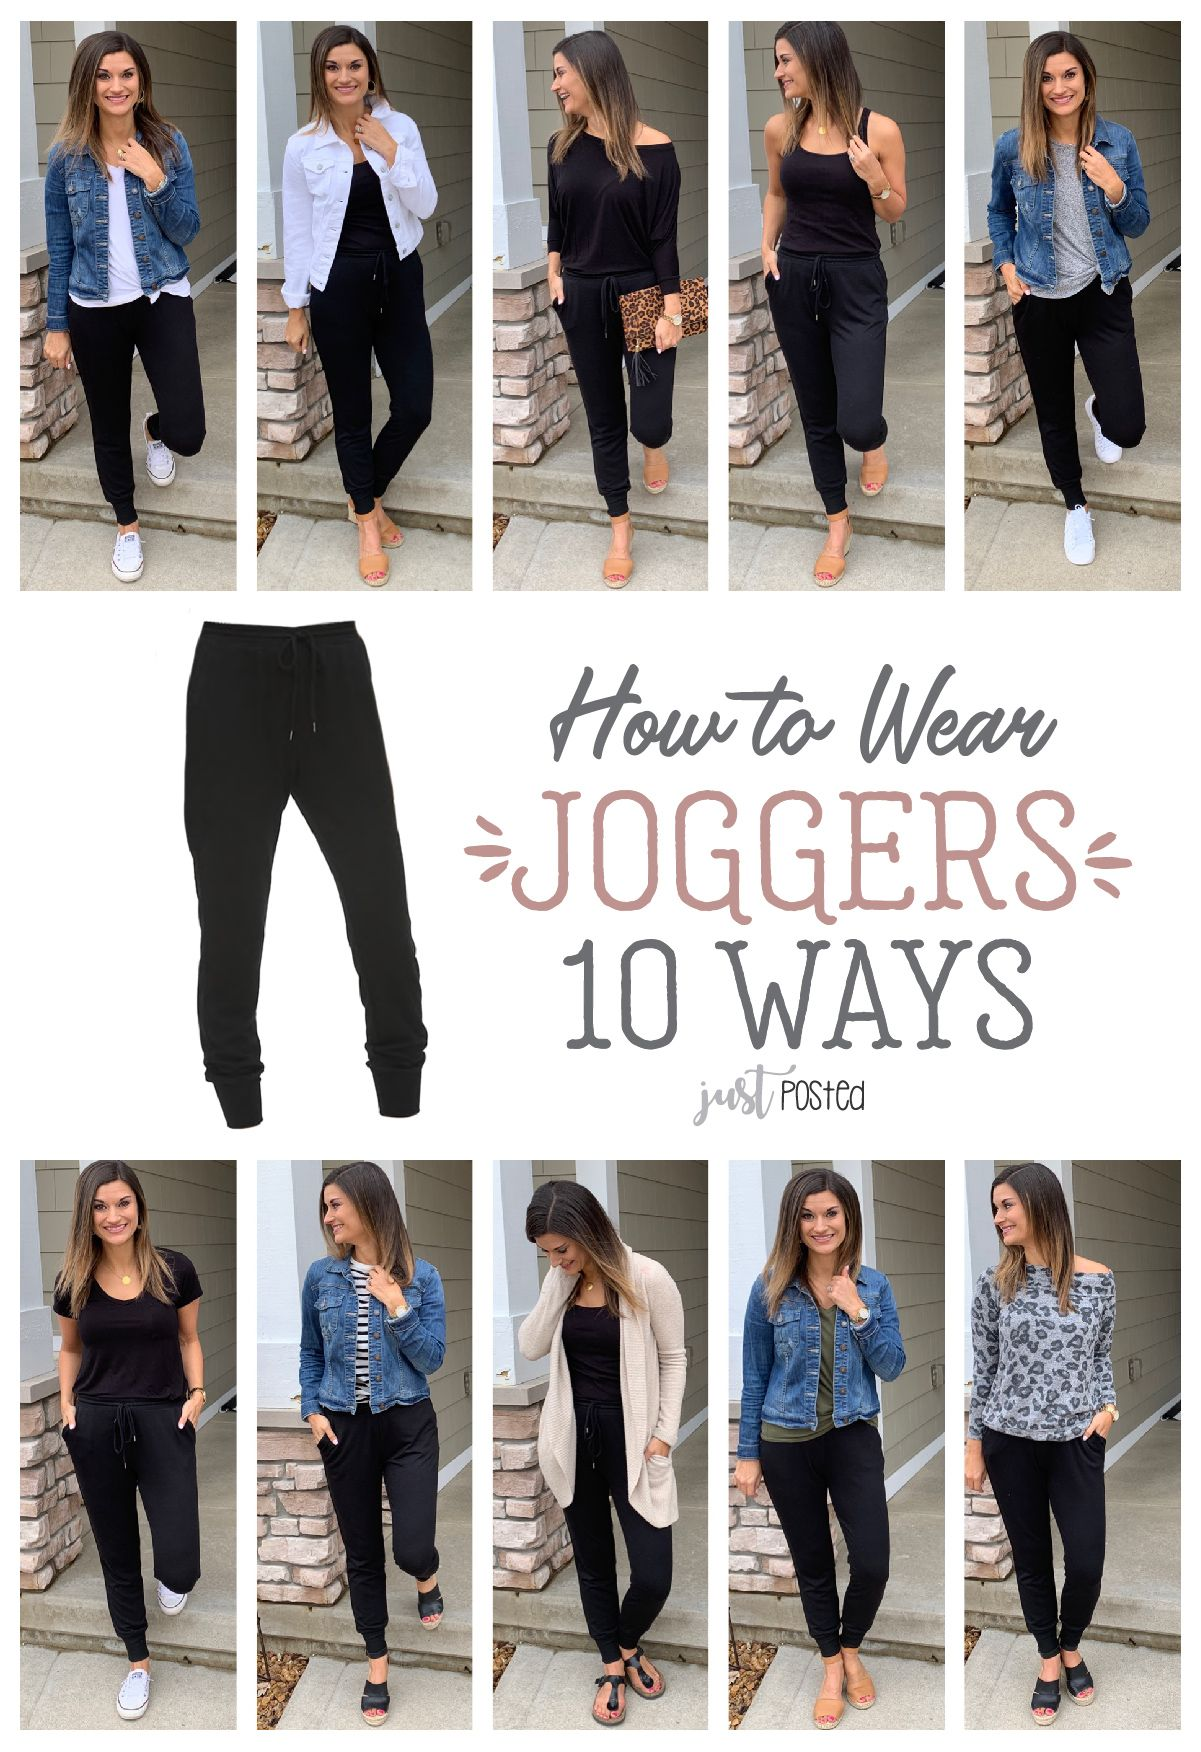 How to wear and style joggers 10 different ways! #howtowear